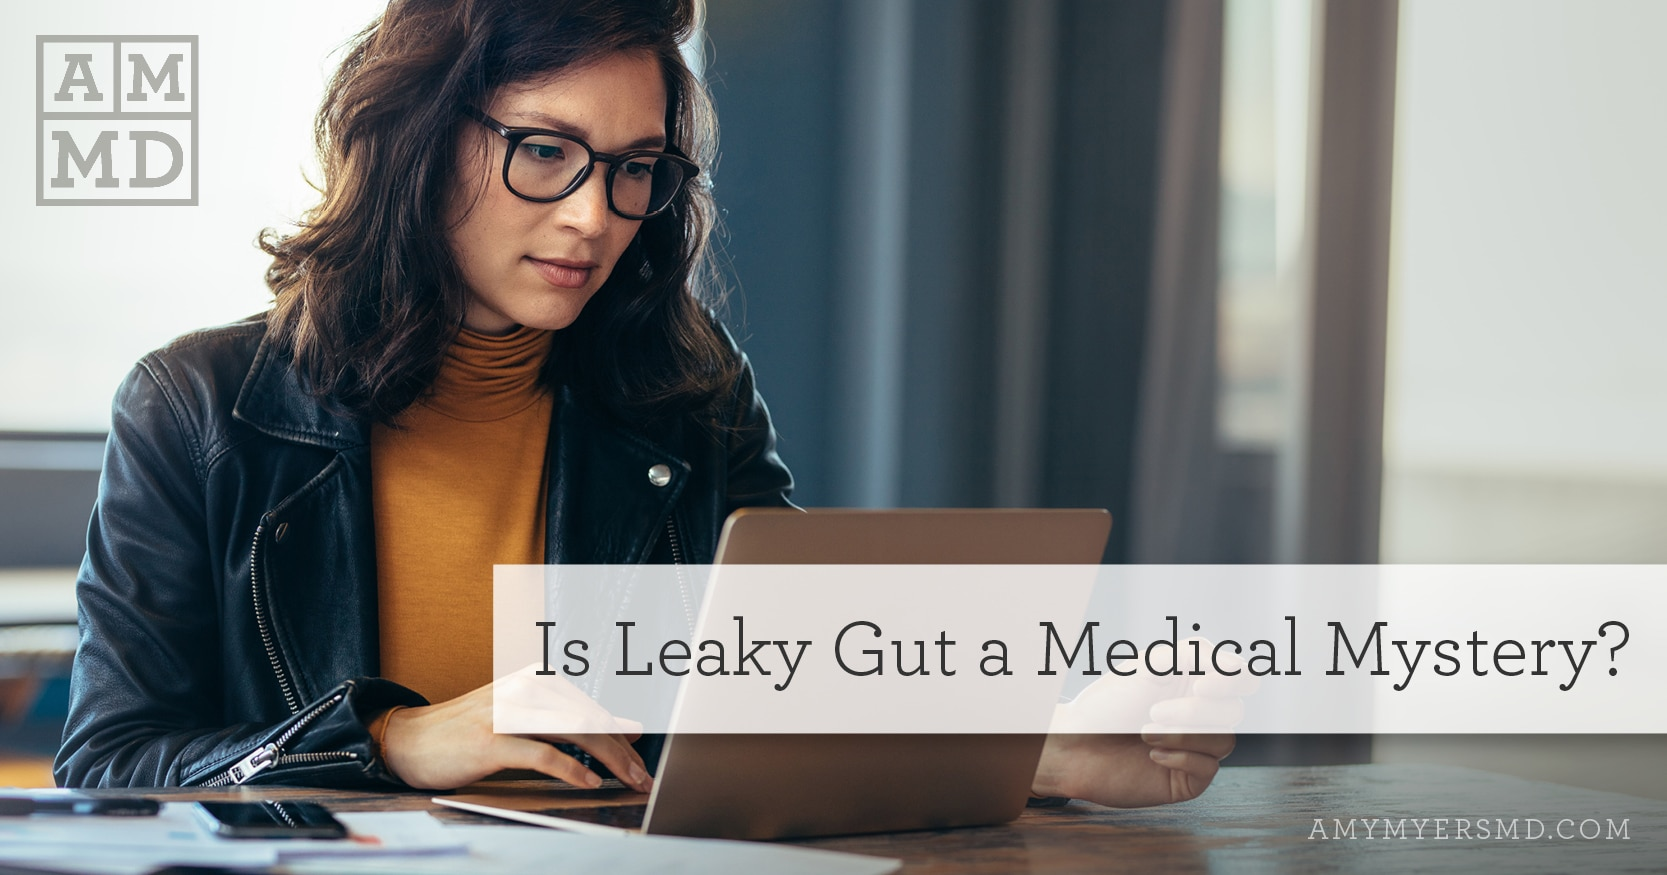 Is Leaky Gut a Medical Mystery? - Woman with a laptop computer - Featured Image - Amy Myers MD